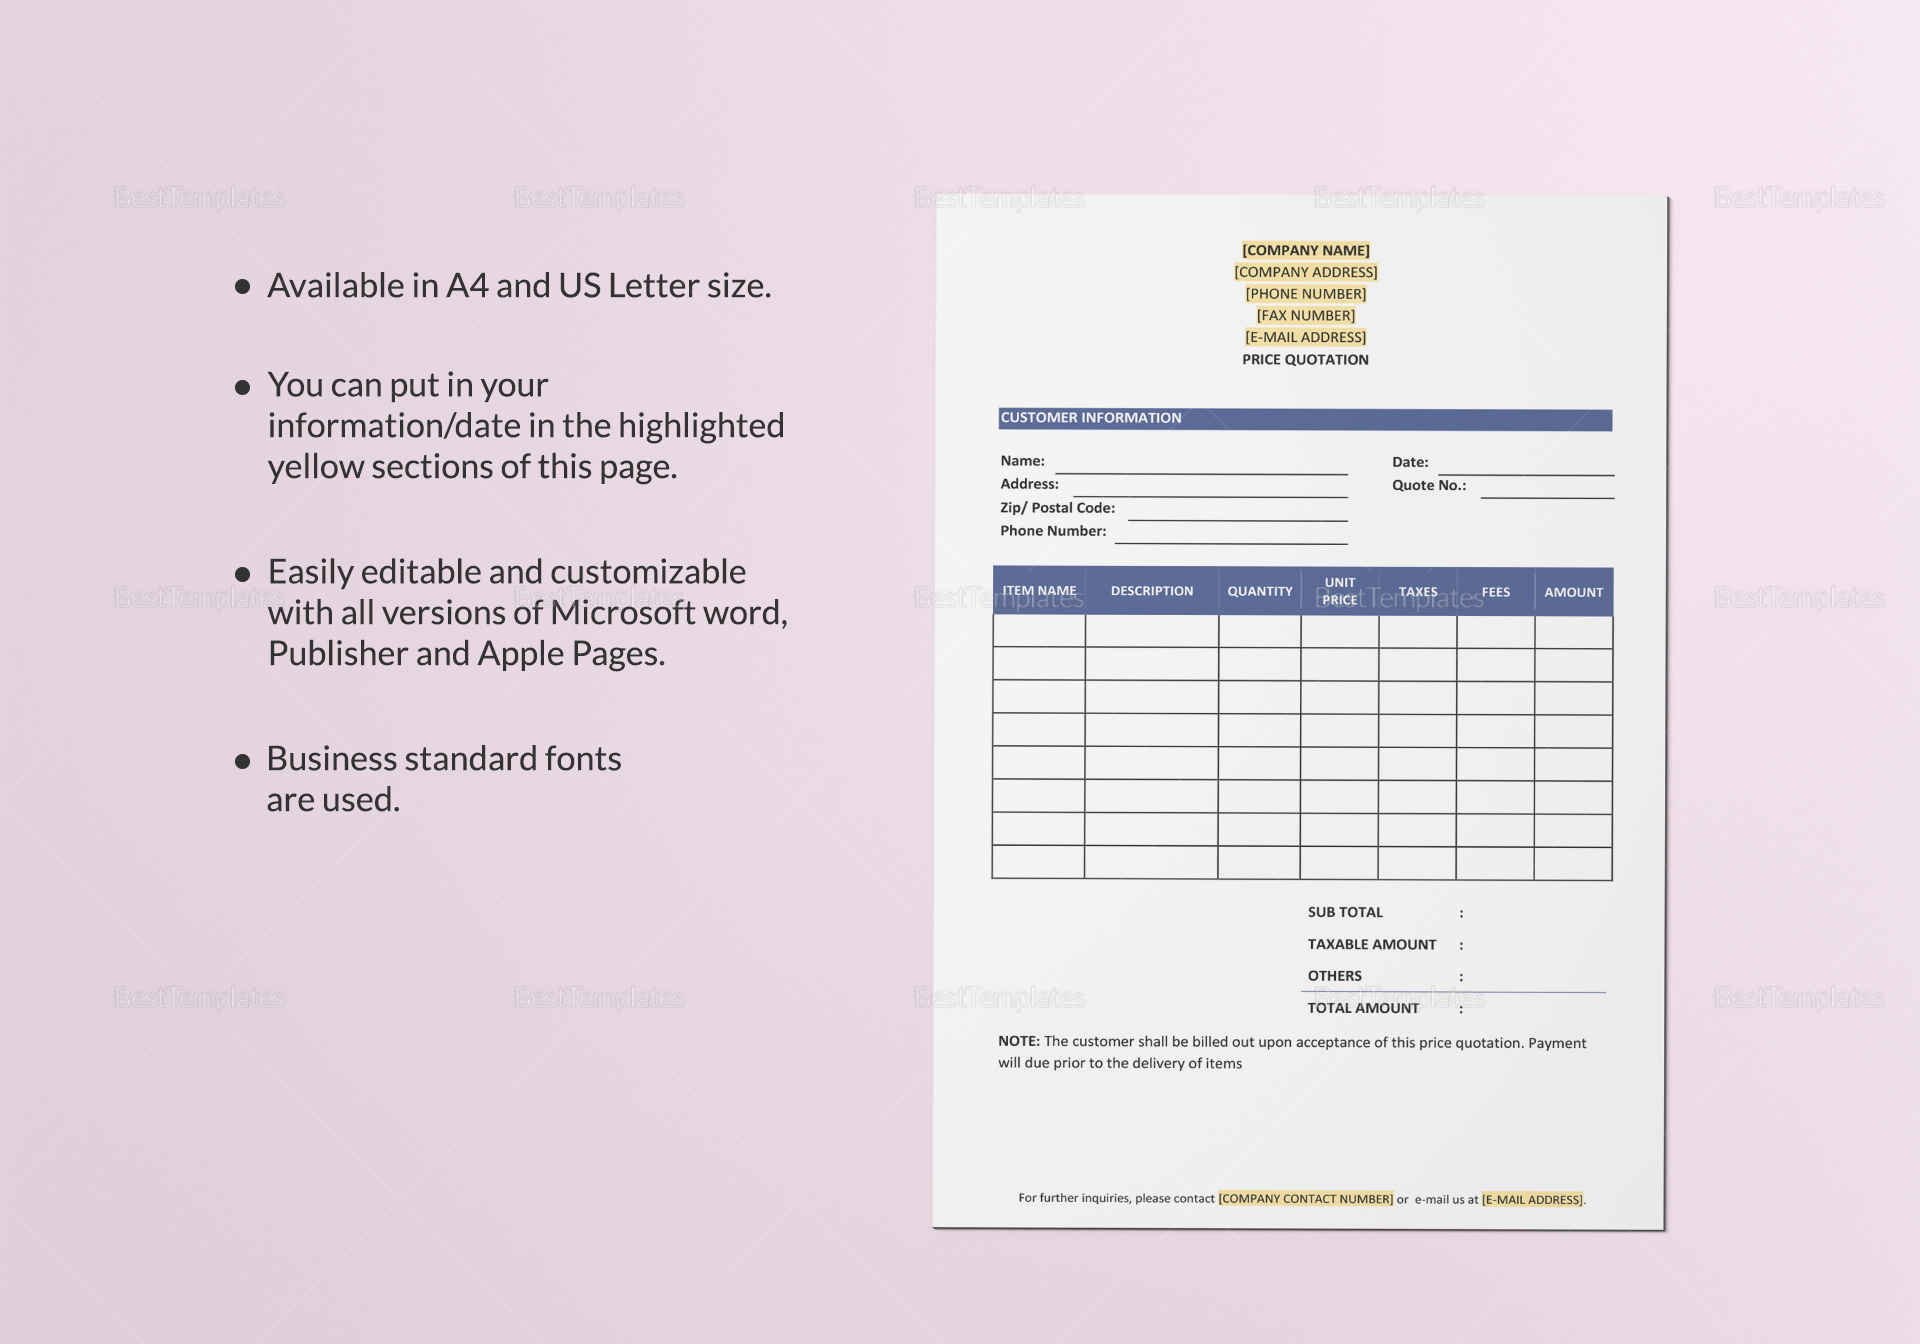 Price Quotation Document Template